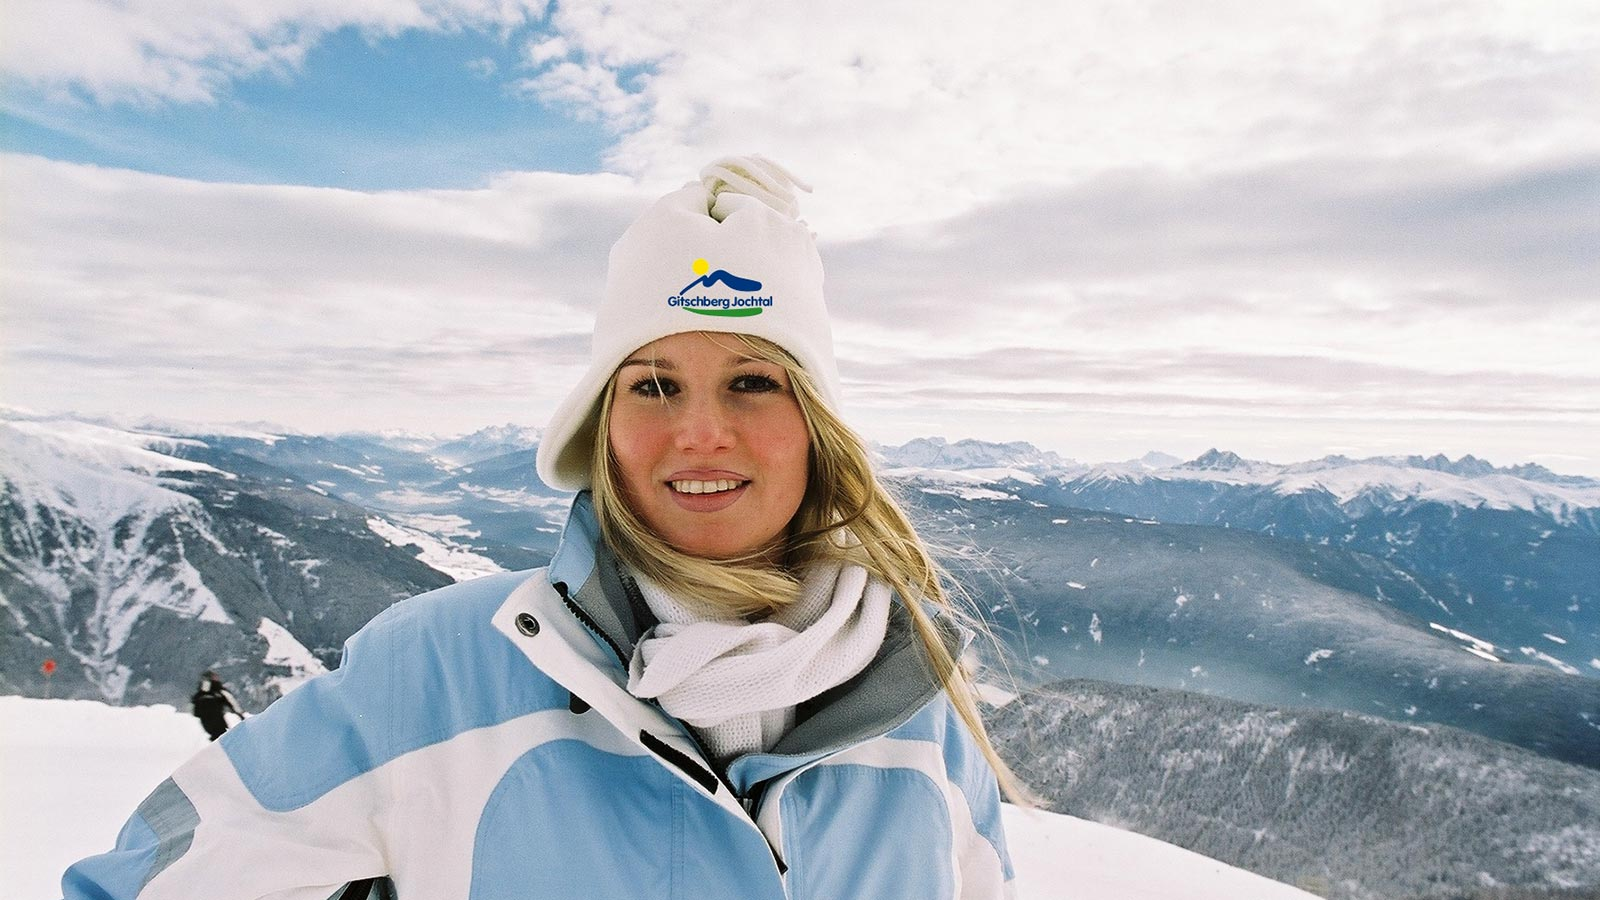 Woman with blonde hair with a beanie with the Gitschberg-Jochtal logo, snowy landscape in the background